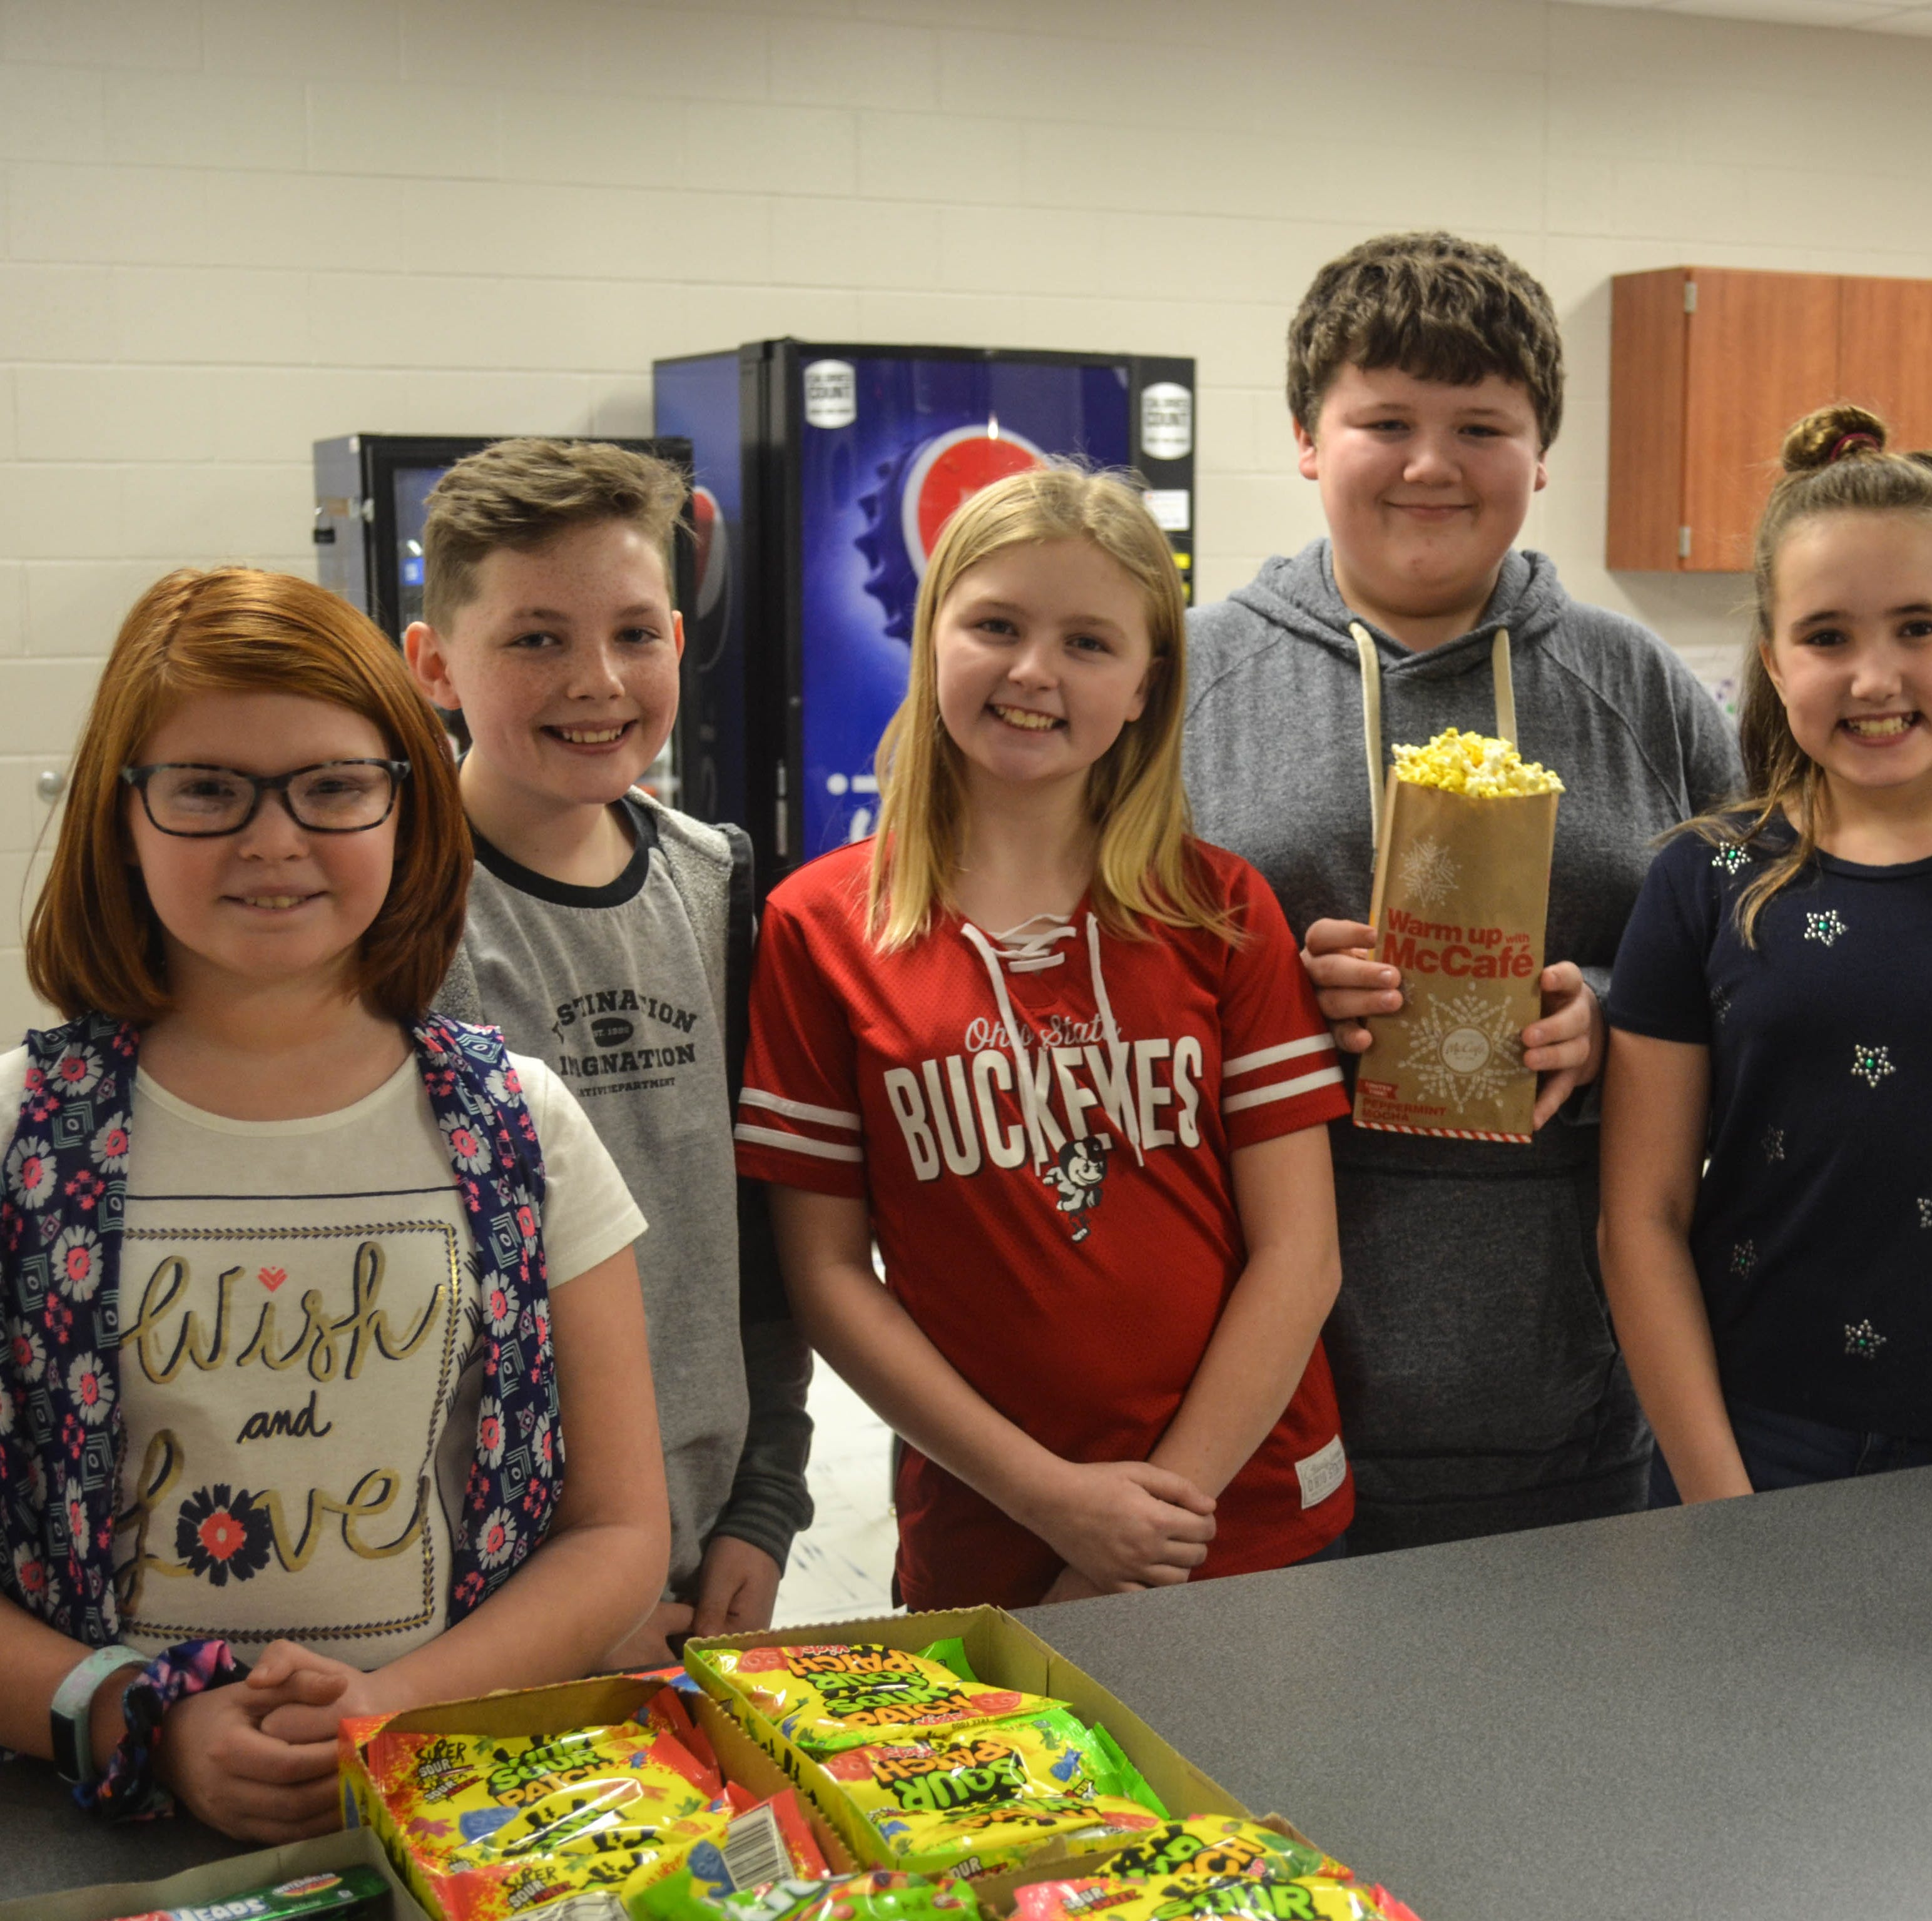 Middle school students turn popcorn sales into coats for needy